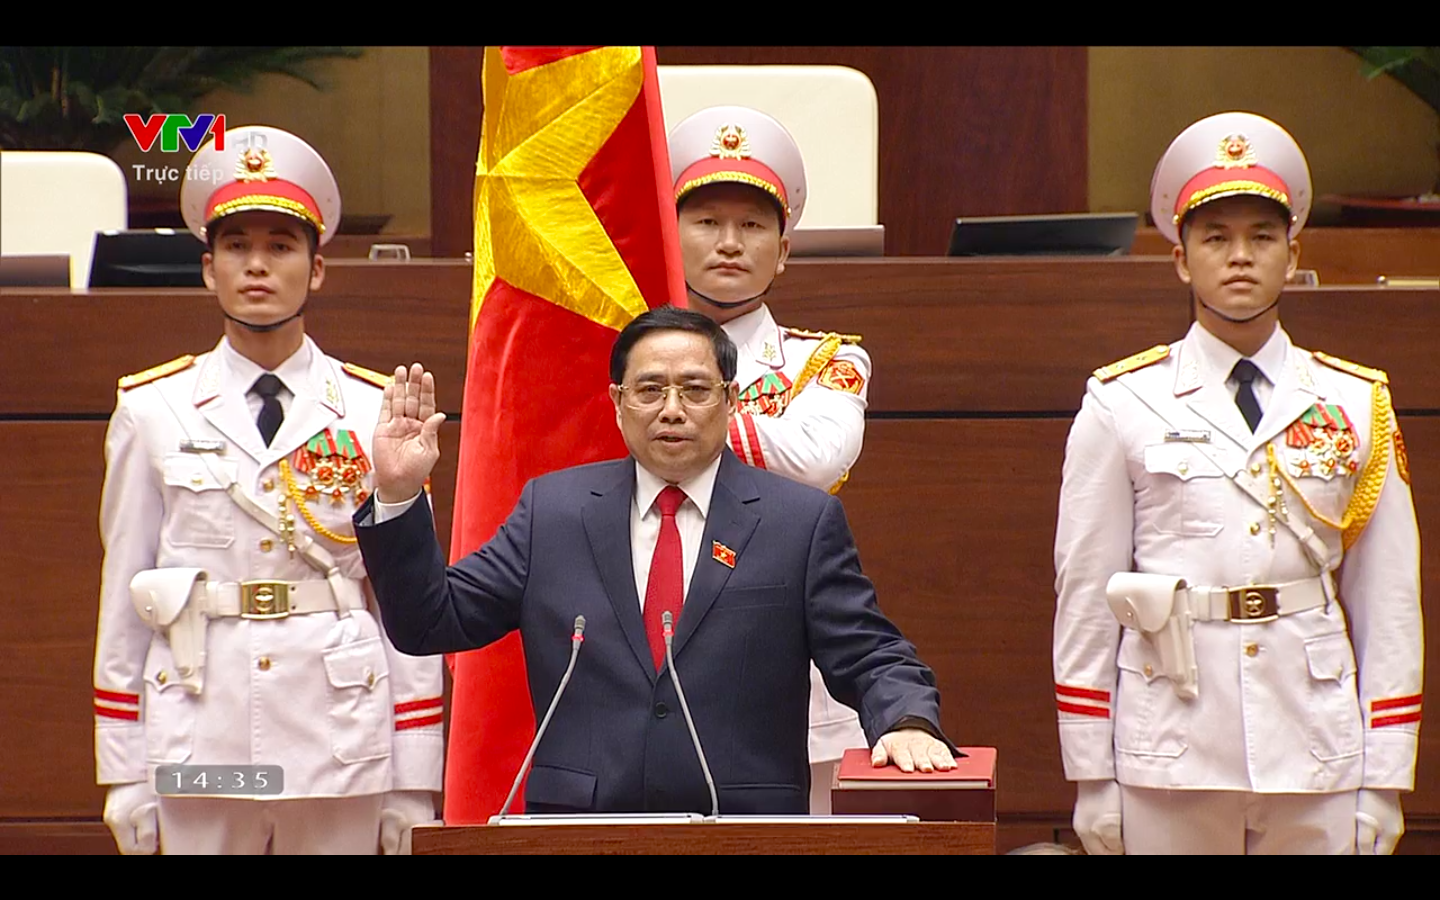 Pham Minh Chinh re-elected as Vietnamese prime minister for 2021-26